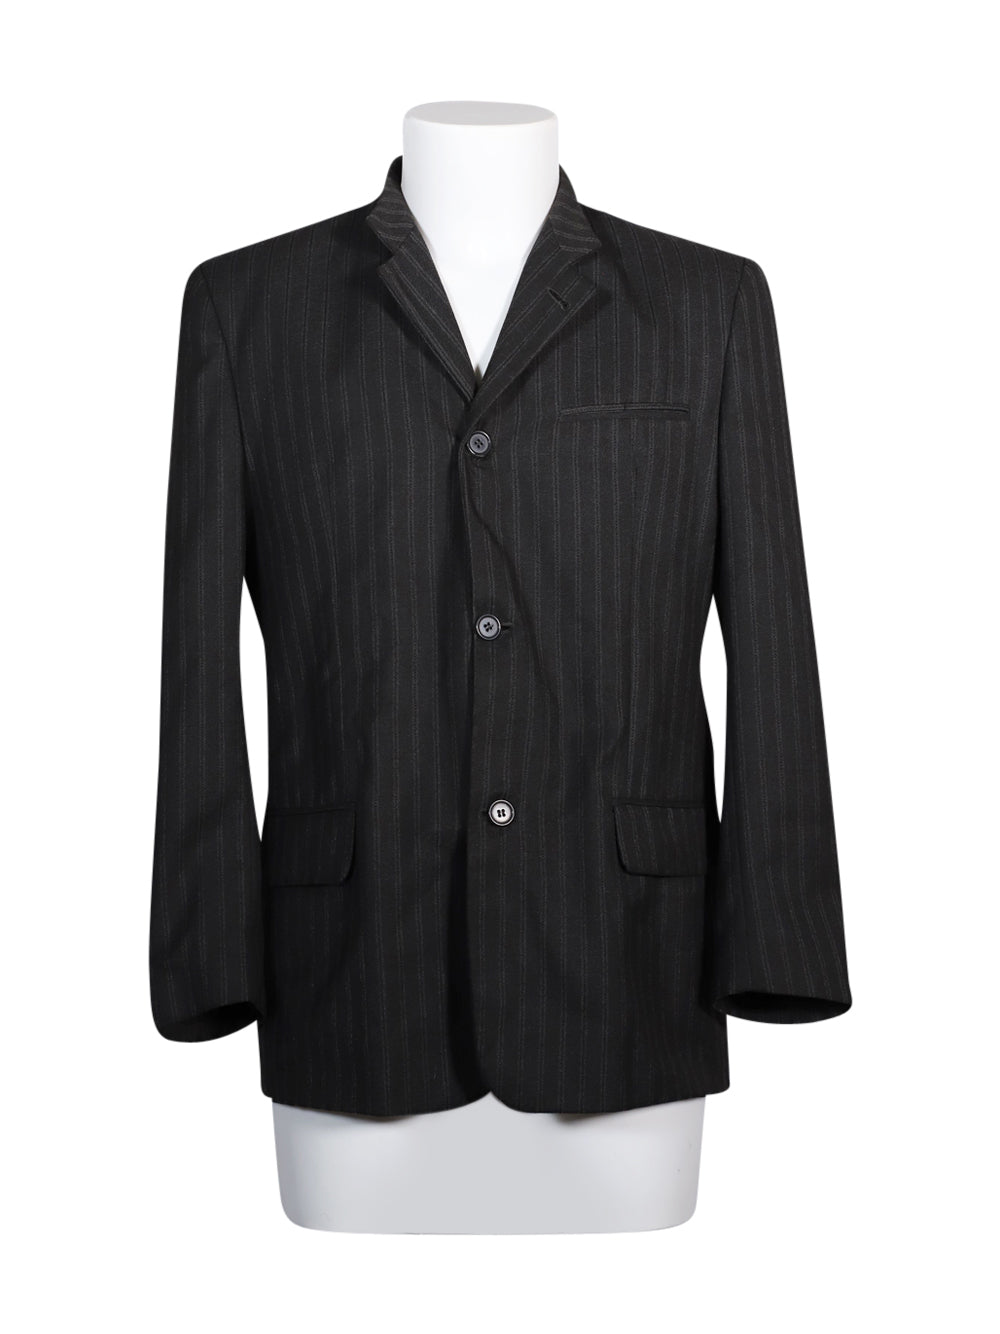 Front photo of Preloved dimensione uomo Grey Man's blazer - size 36/S